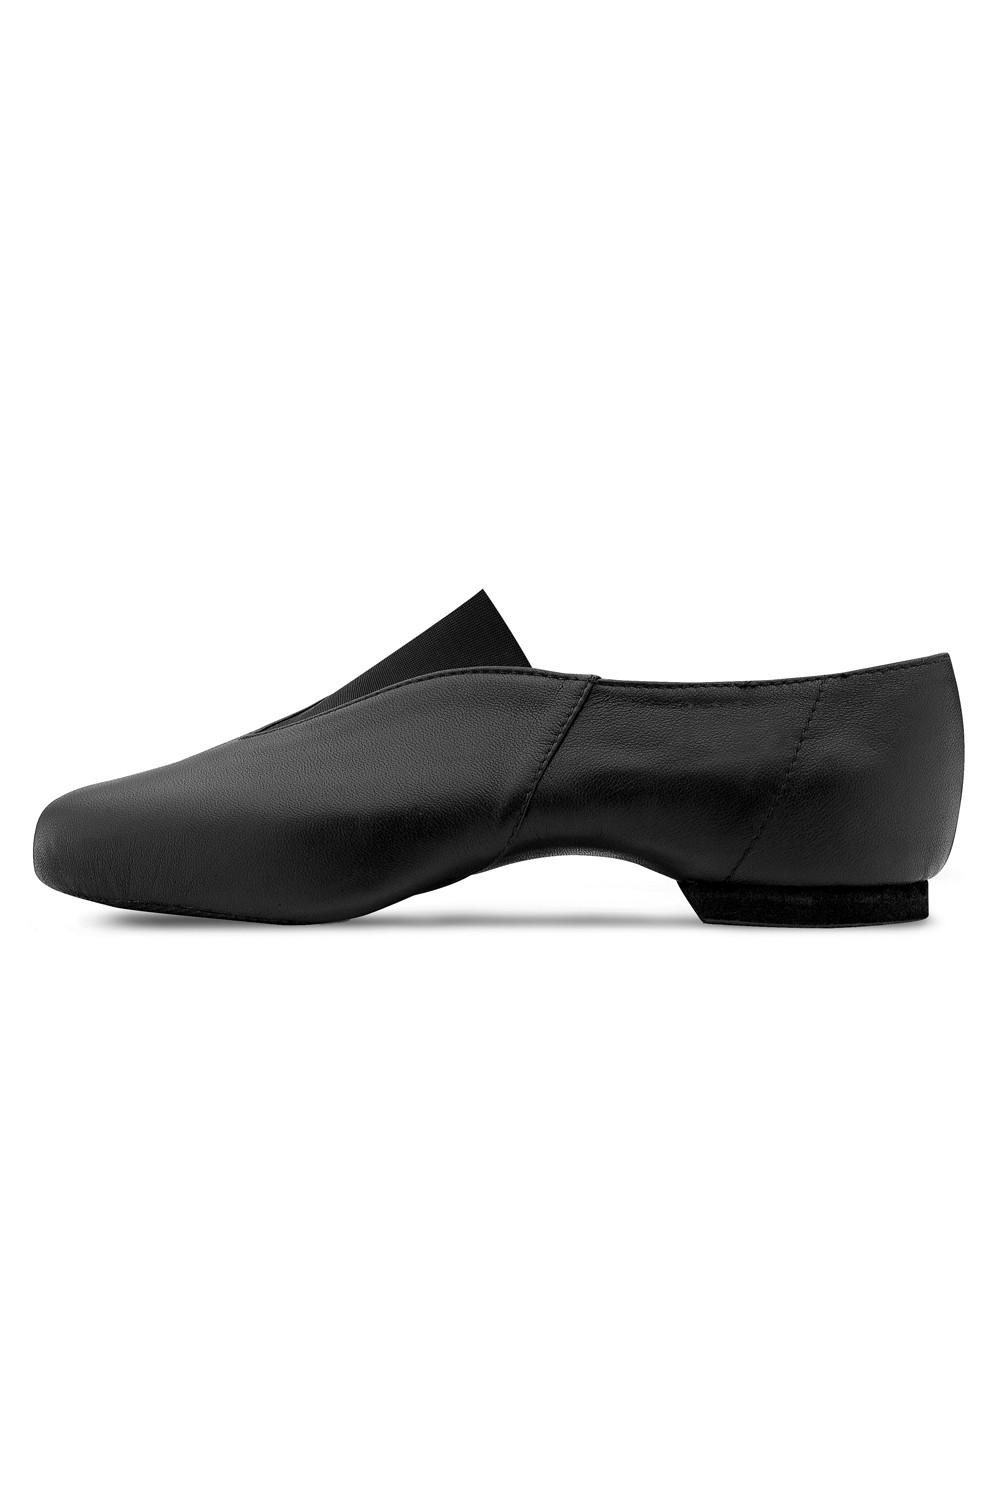 Women's Jazz Shoes